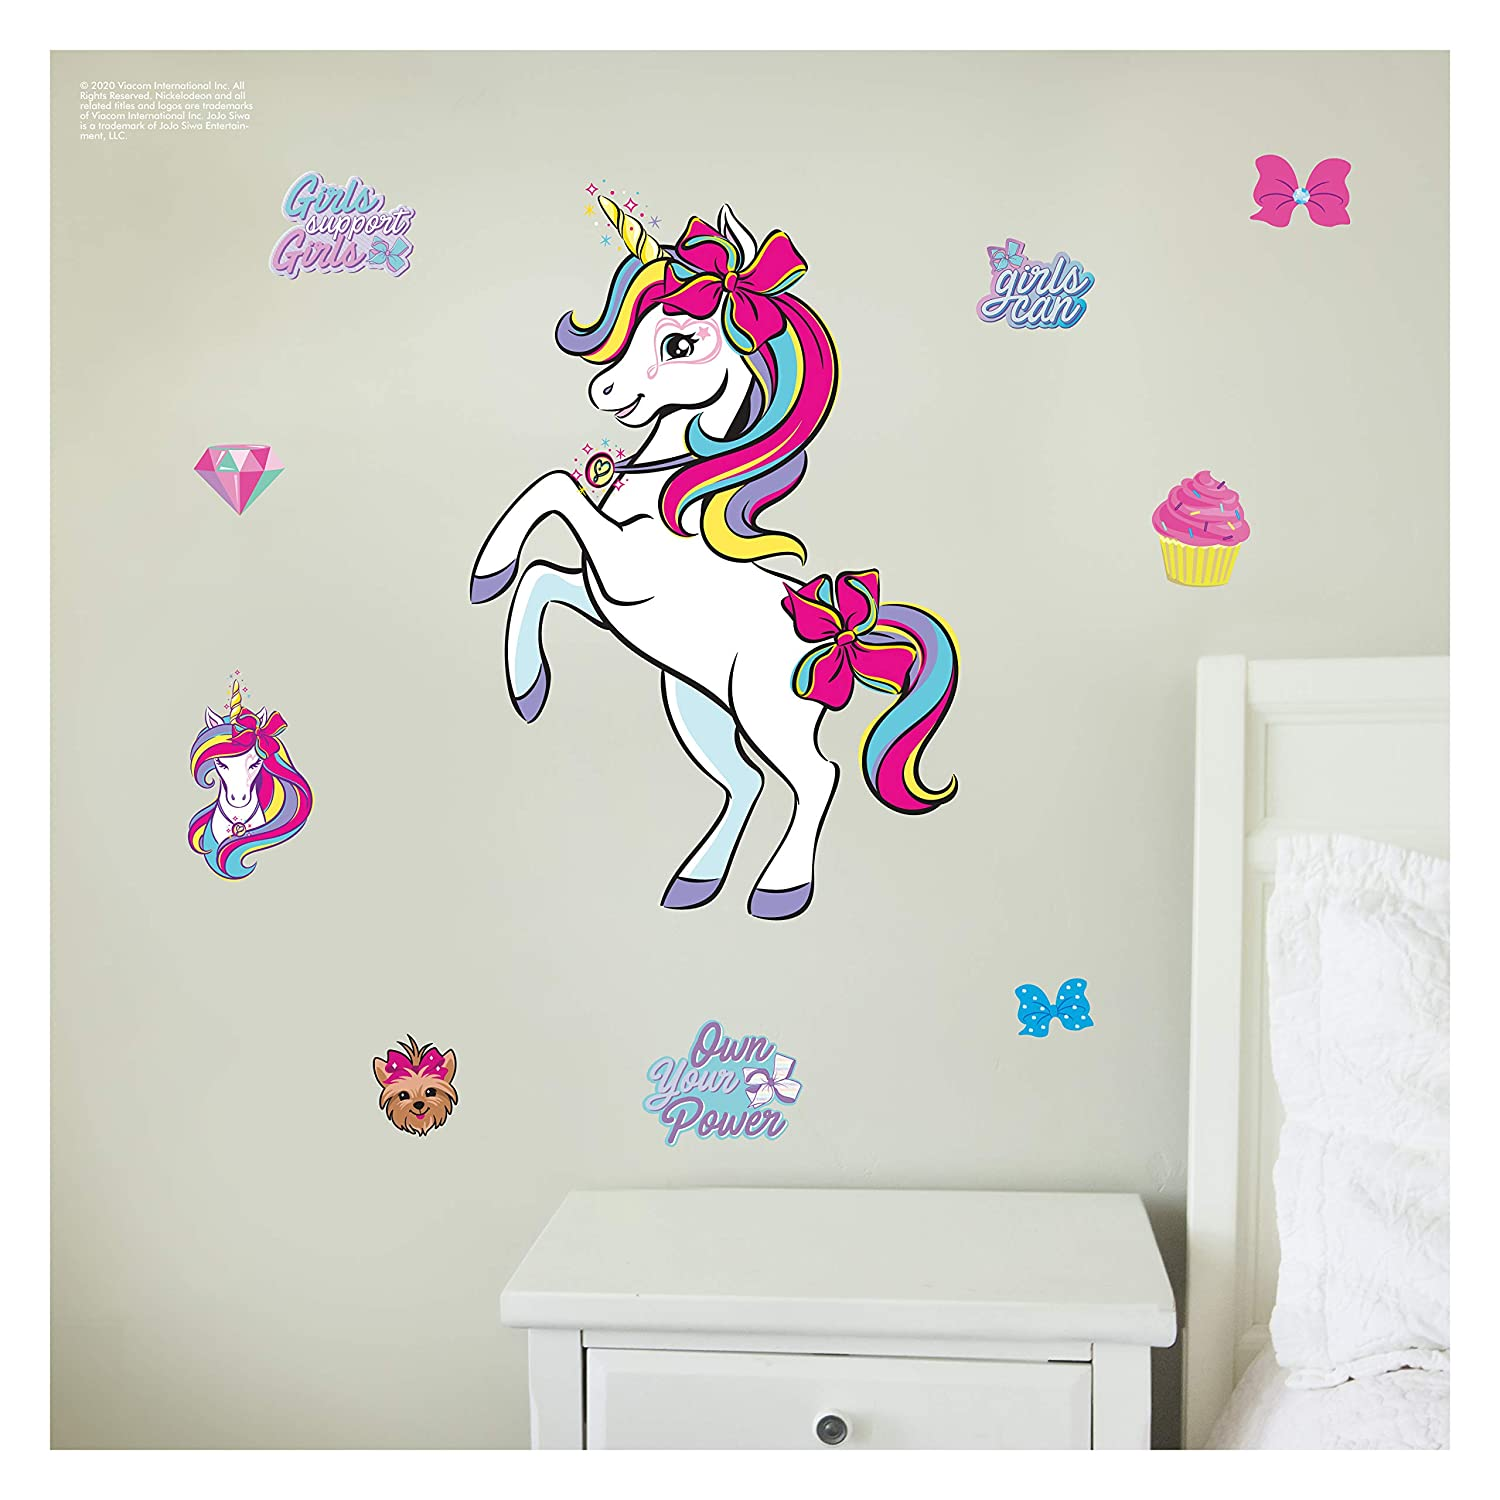 JoJo Siwa Unicorn Wall Decal - Unicorn Wall Decor with 3D Augmented Reality Interaction - Unicorn Room Decor